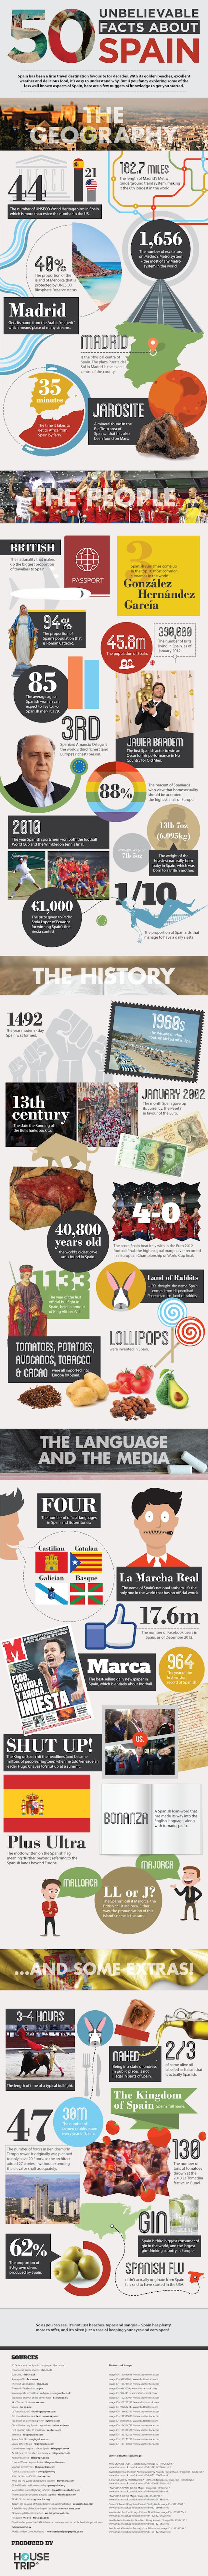 50 Fascinating Facts About Spain (INFOGRAPHIC) via #theculturist #AirConcierge Barcelona $685 Madrid $715 ends this week